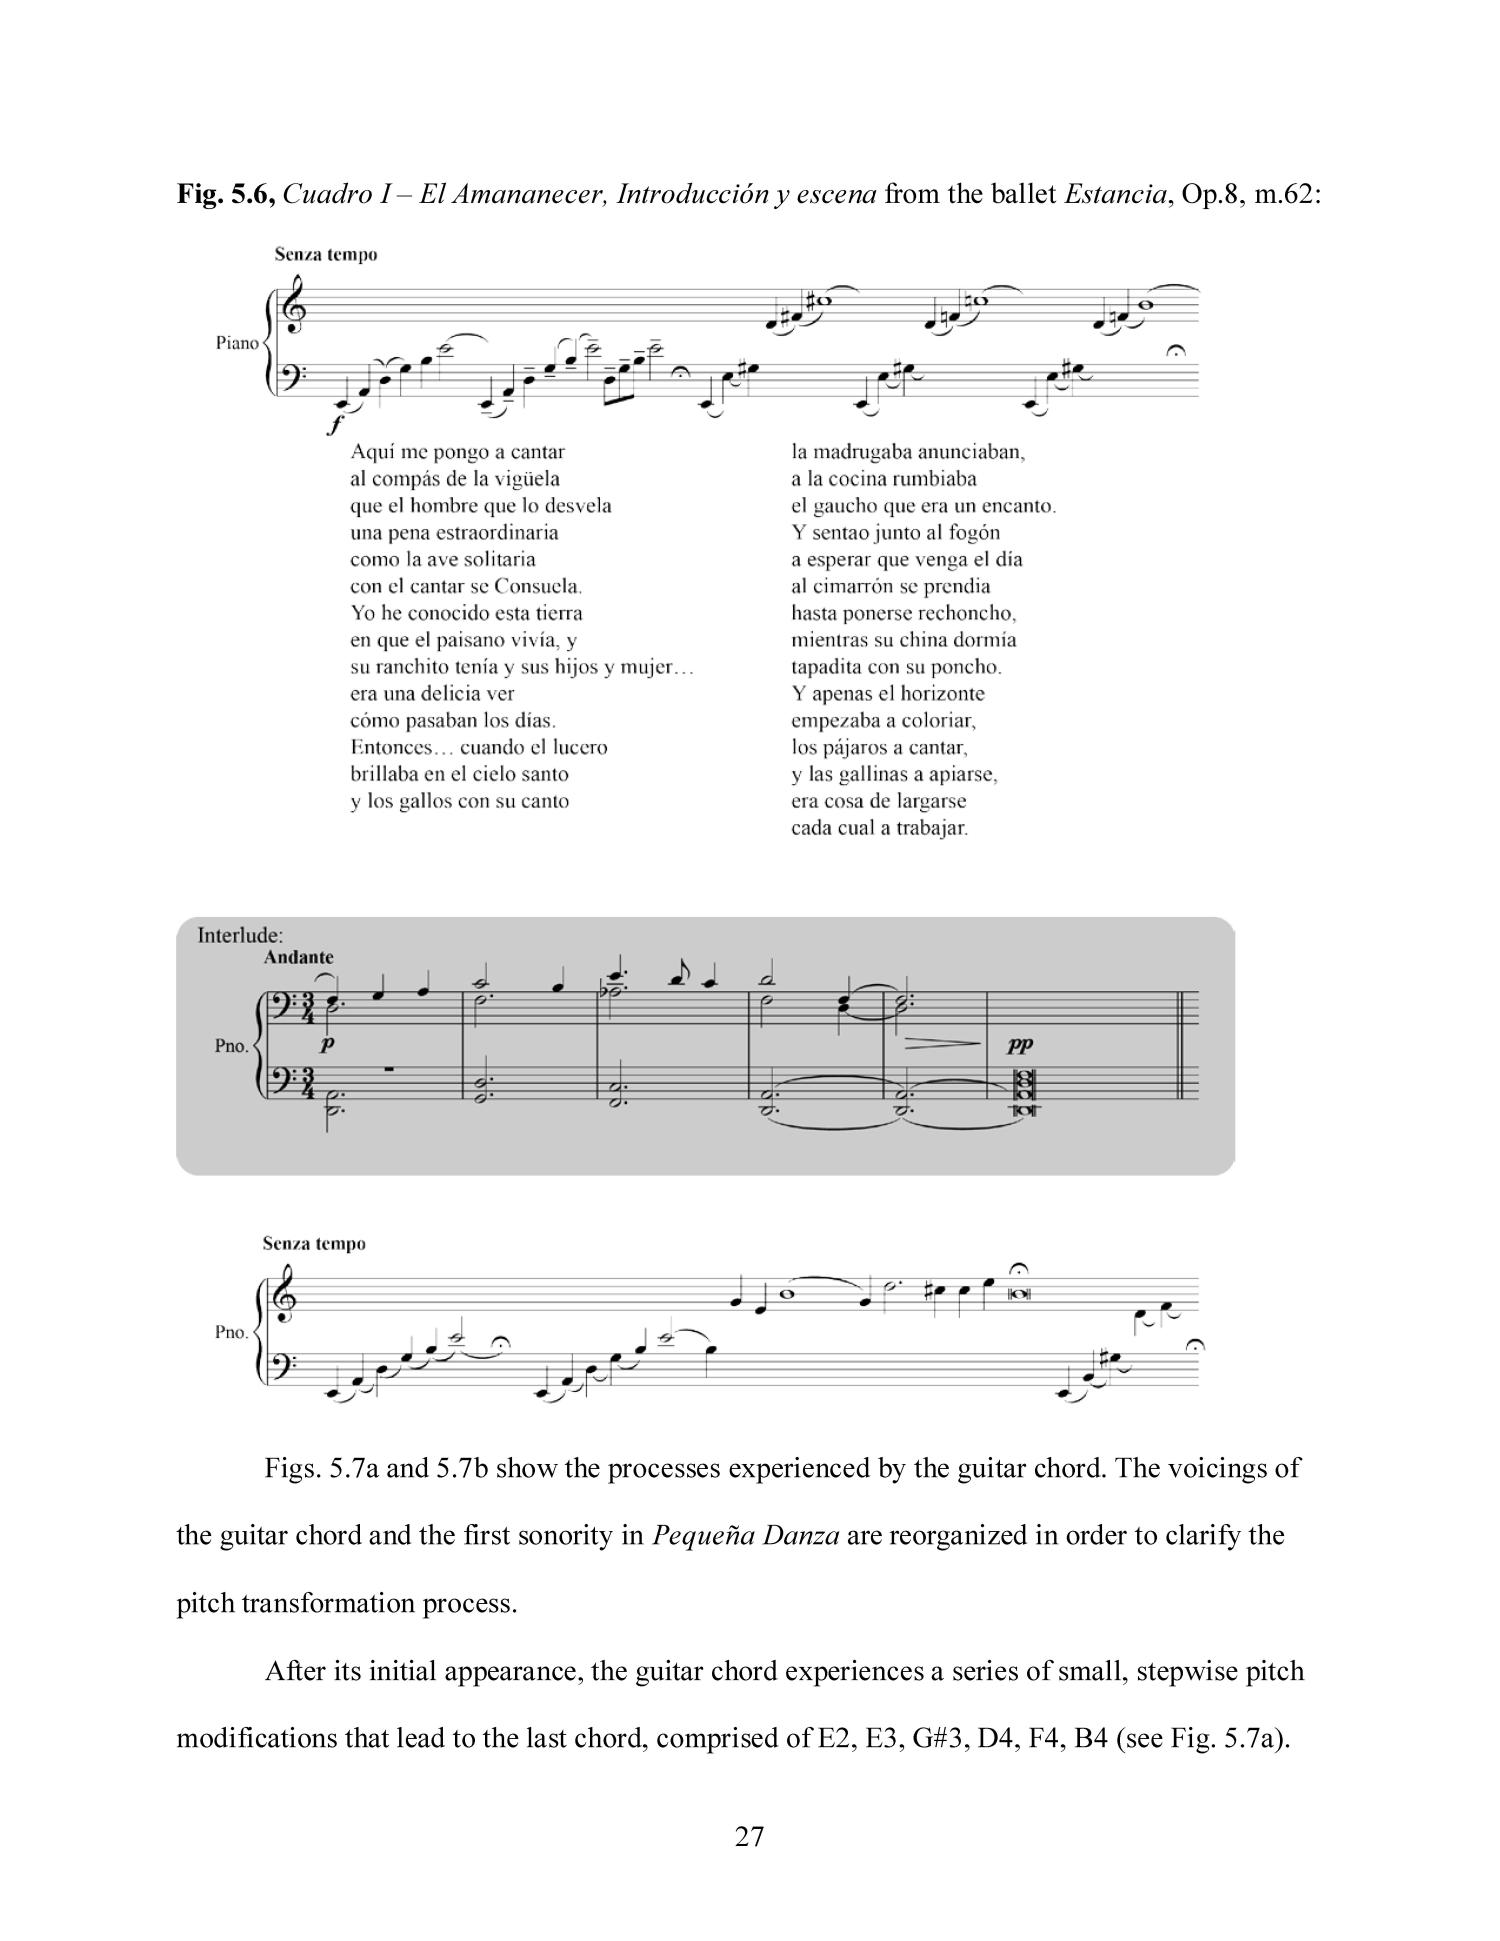 Alberto Ginastera And The Guitar Chord An Analytical Study Page